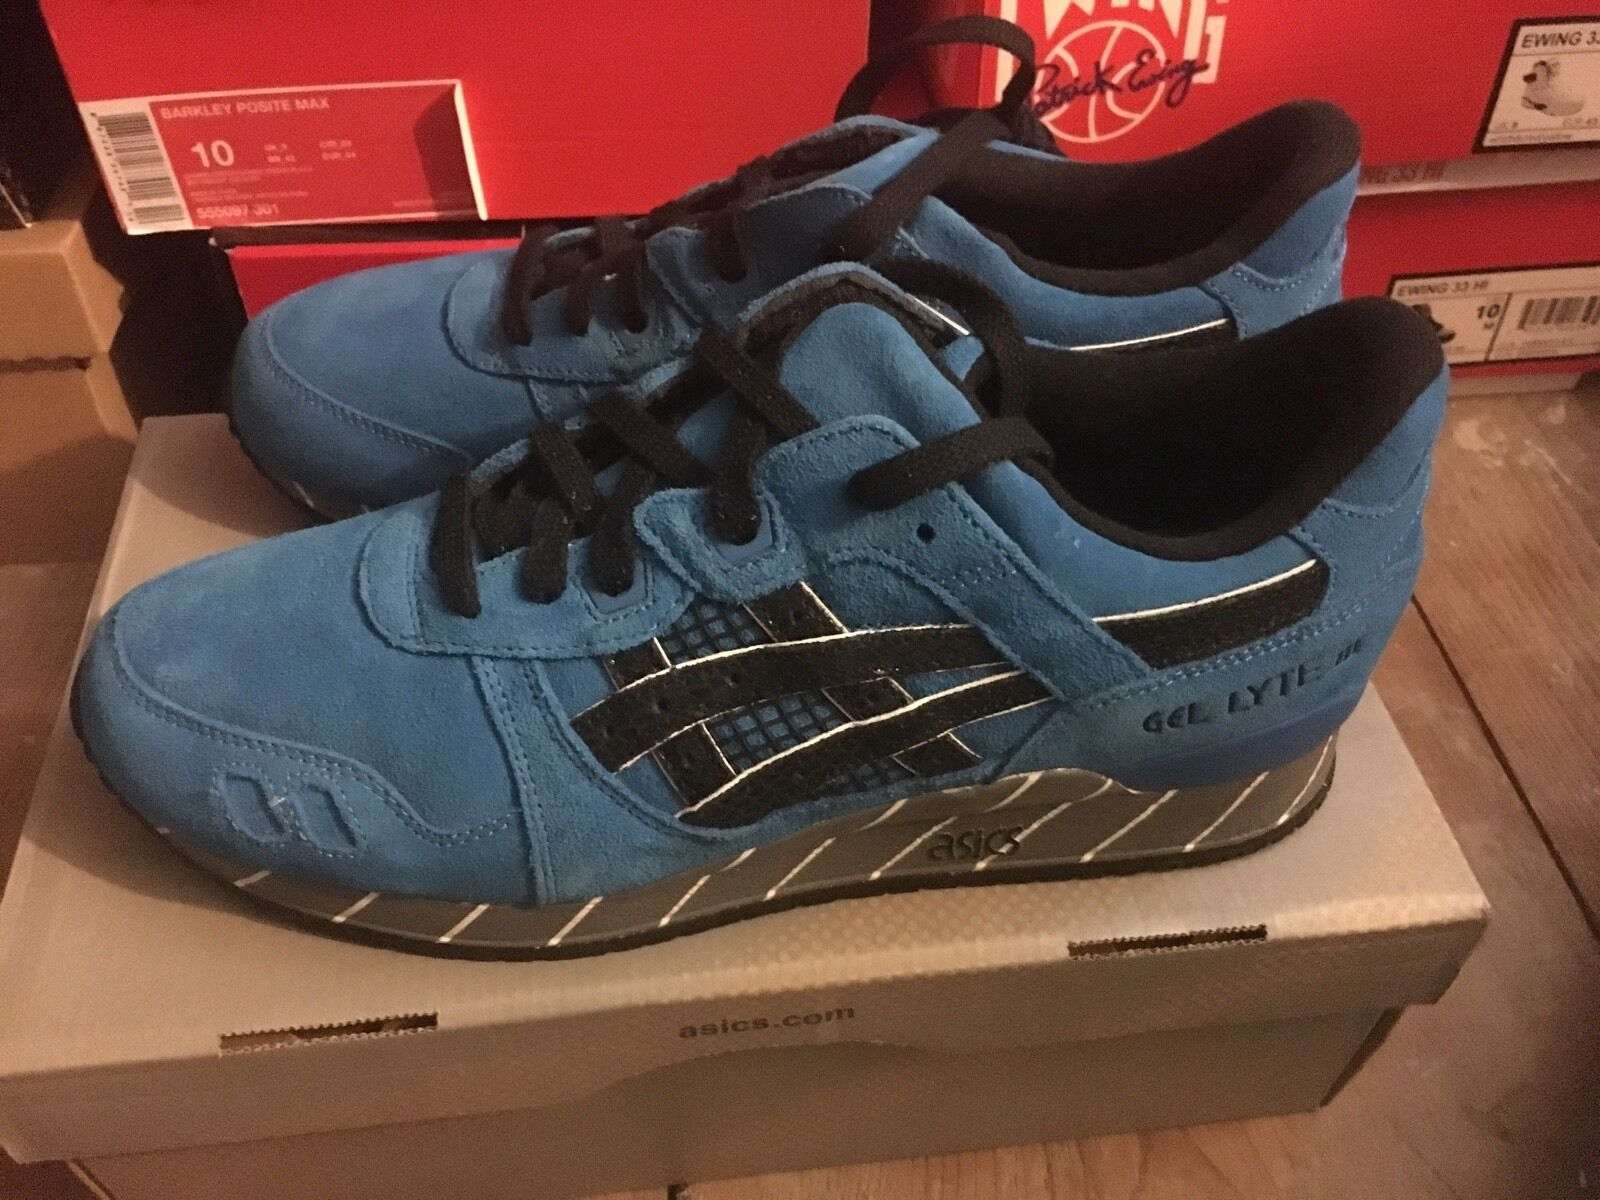 Asics mantequilla Gel Lyte III X mantequilla Asics extra Copperhead Cottonmouth Kill Bill SZ 10 4a5517